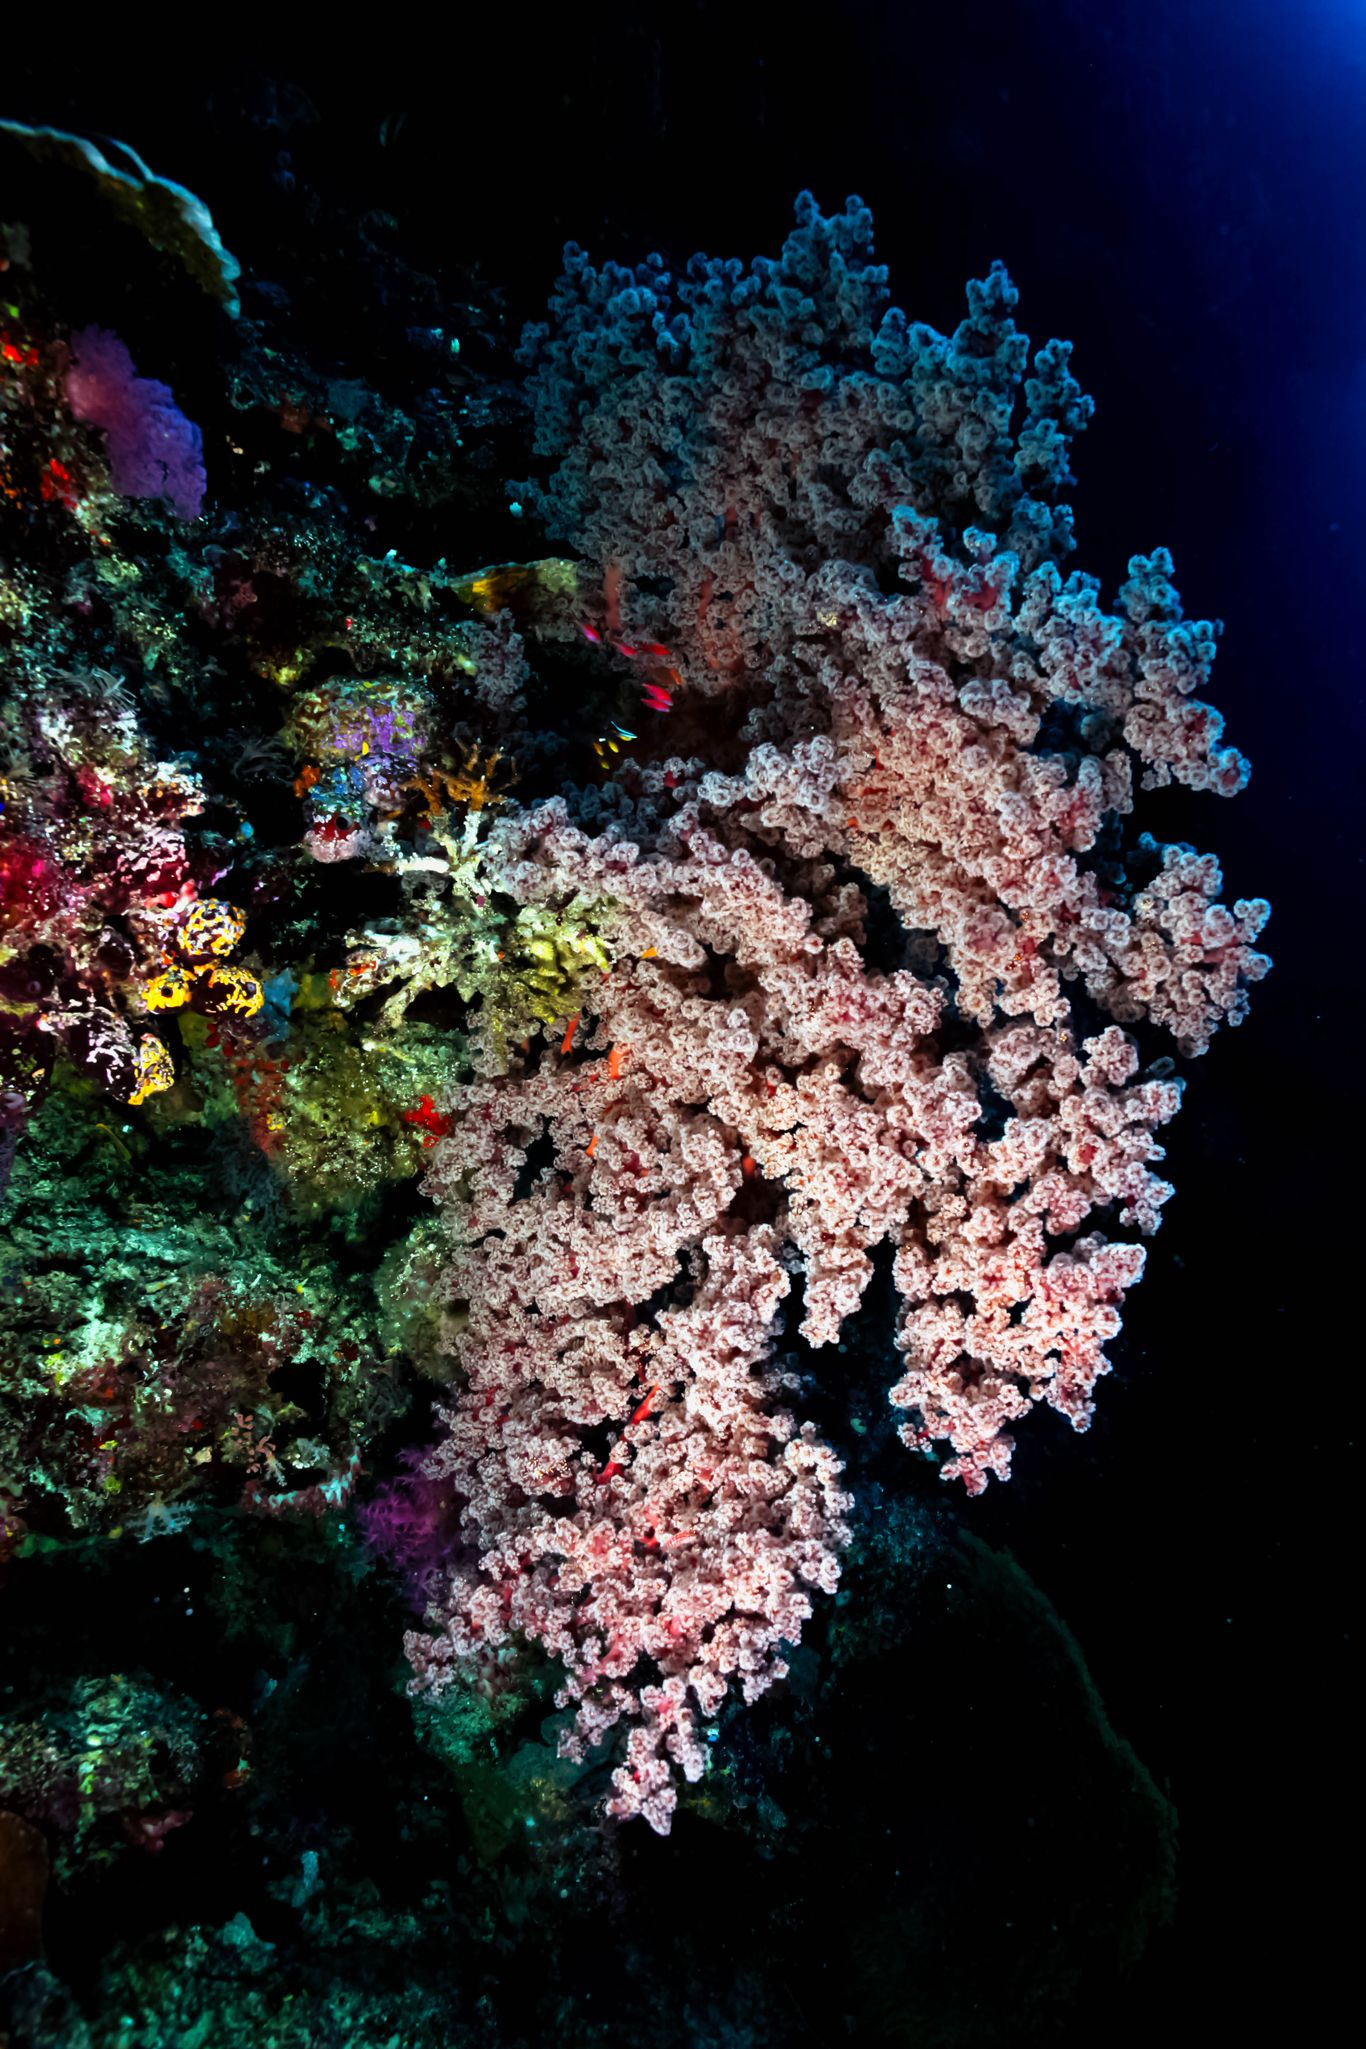 Pink and colorful corals